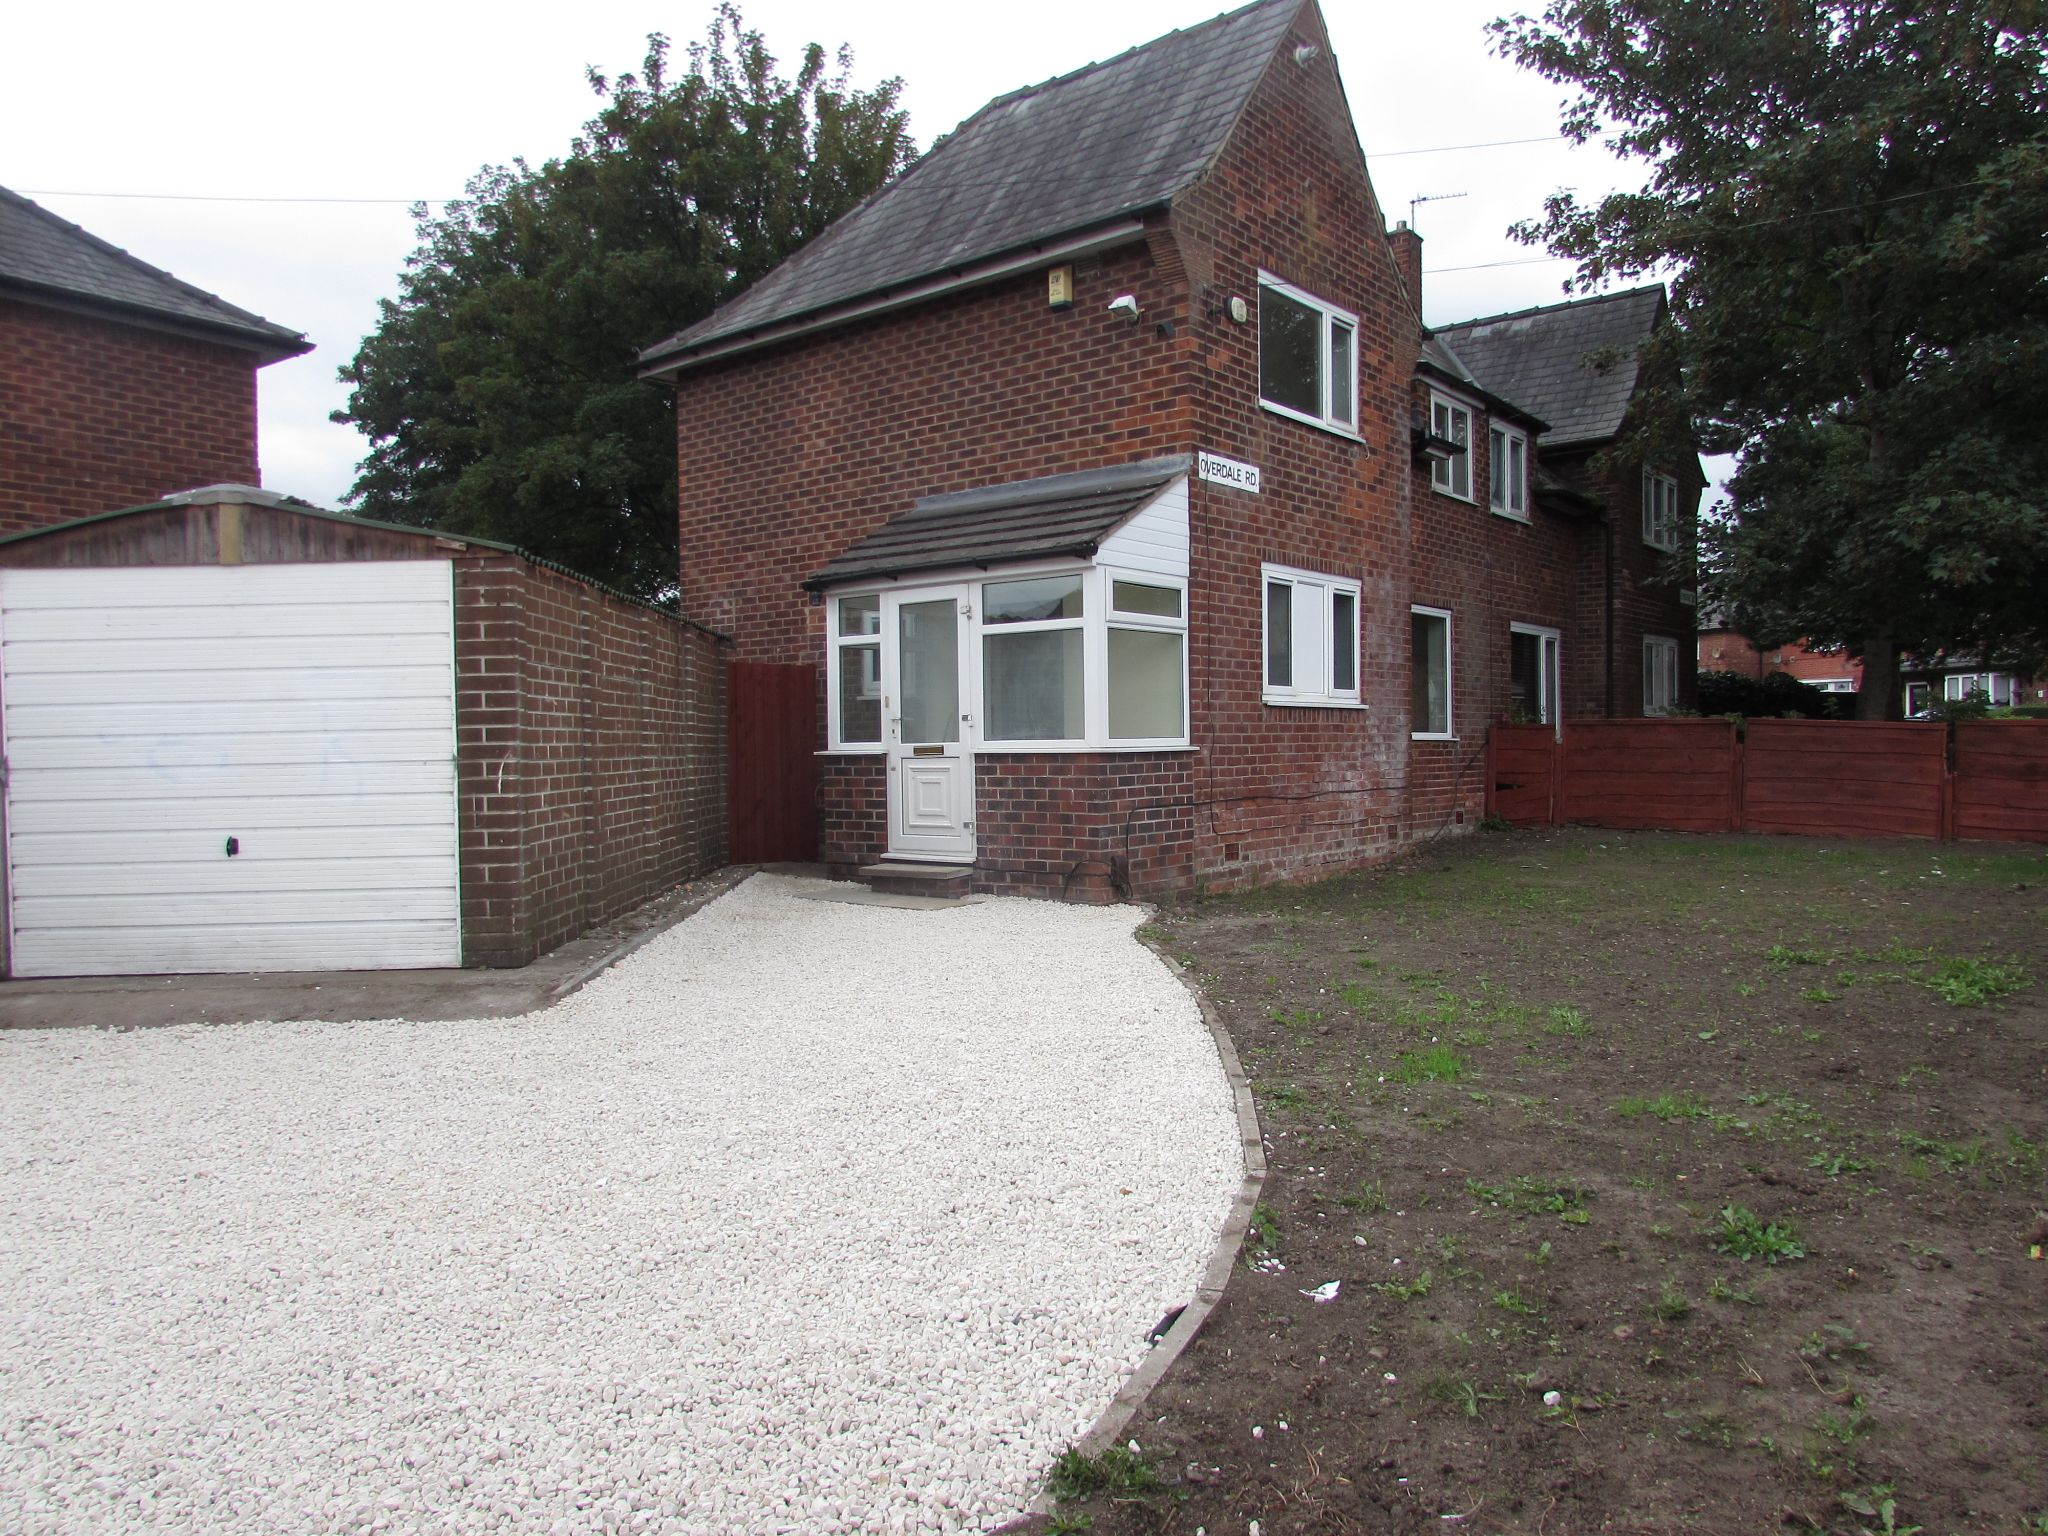 3 Bedroom Semi-detached House For Sale - Photograph 20